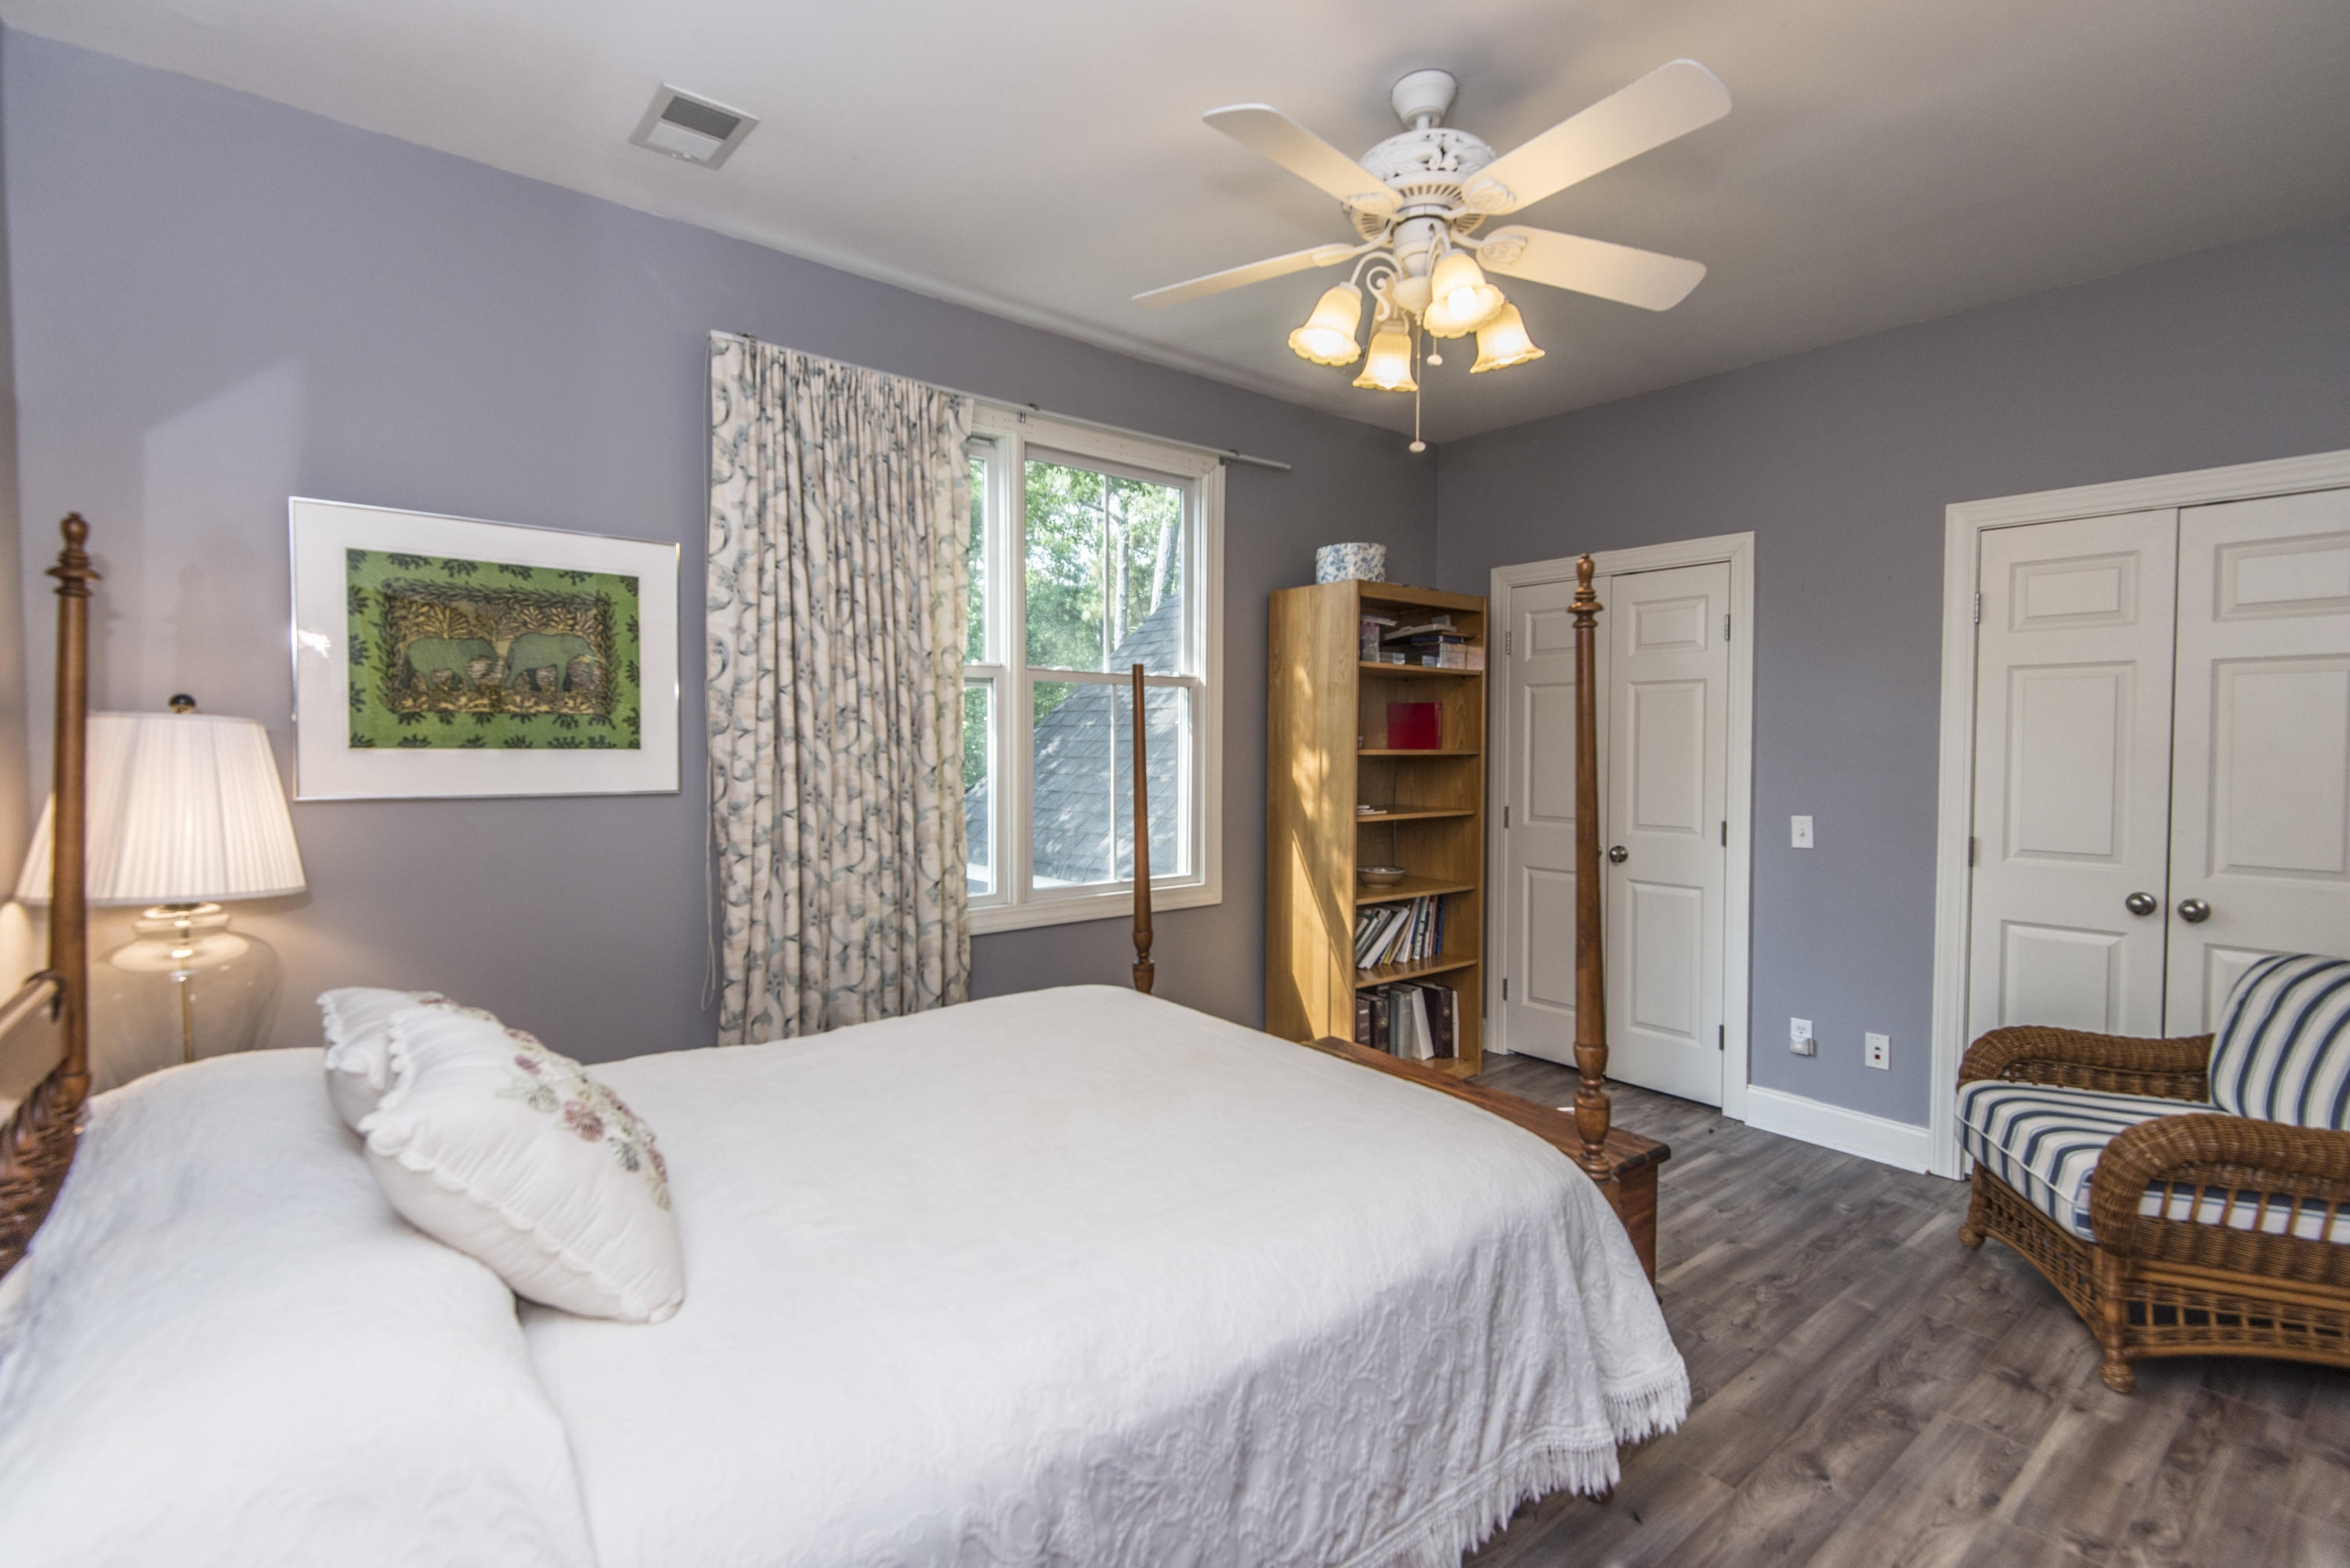 The Villages In St Johns Woods Homes For Sale - 4087 Amy, Johns Island, SC - 44